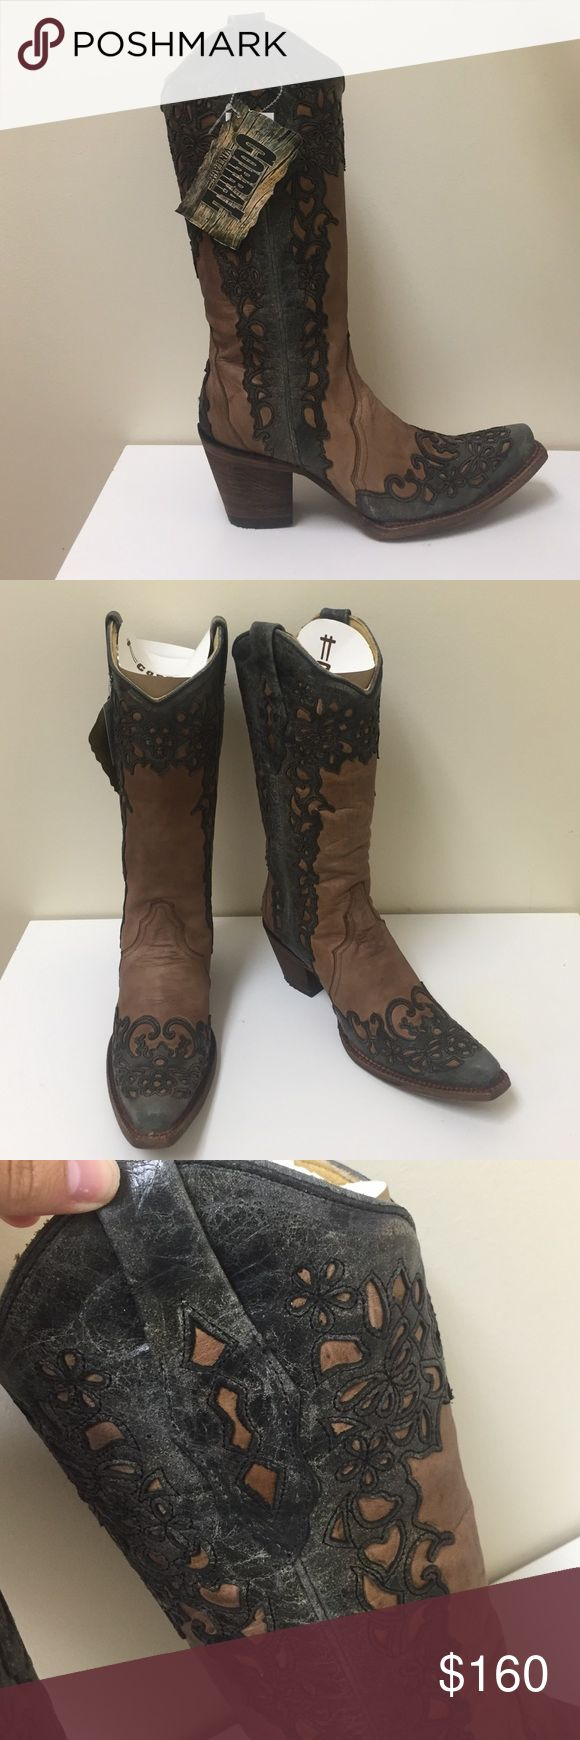 Corral Vintage Boots These boots are from the Corral Vintage line! :) Retail price is $318. New in box with all tags attached. No trades!! Corral Boots Shoes Heeled Boots